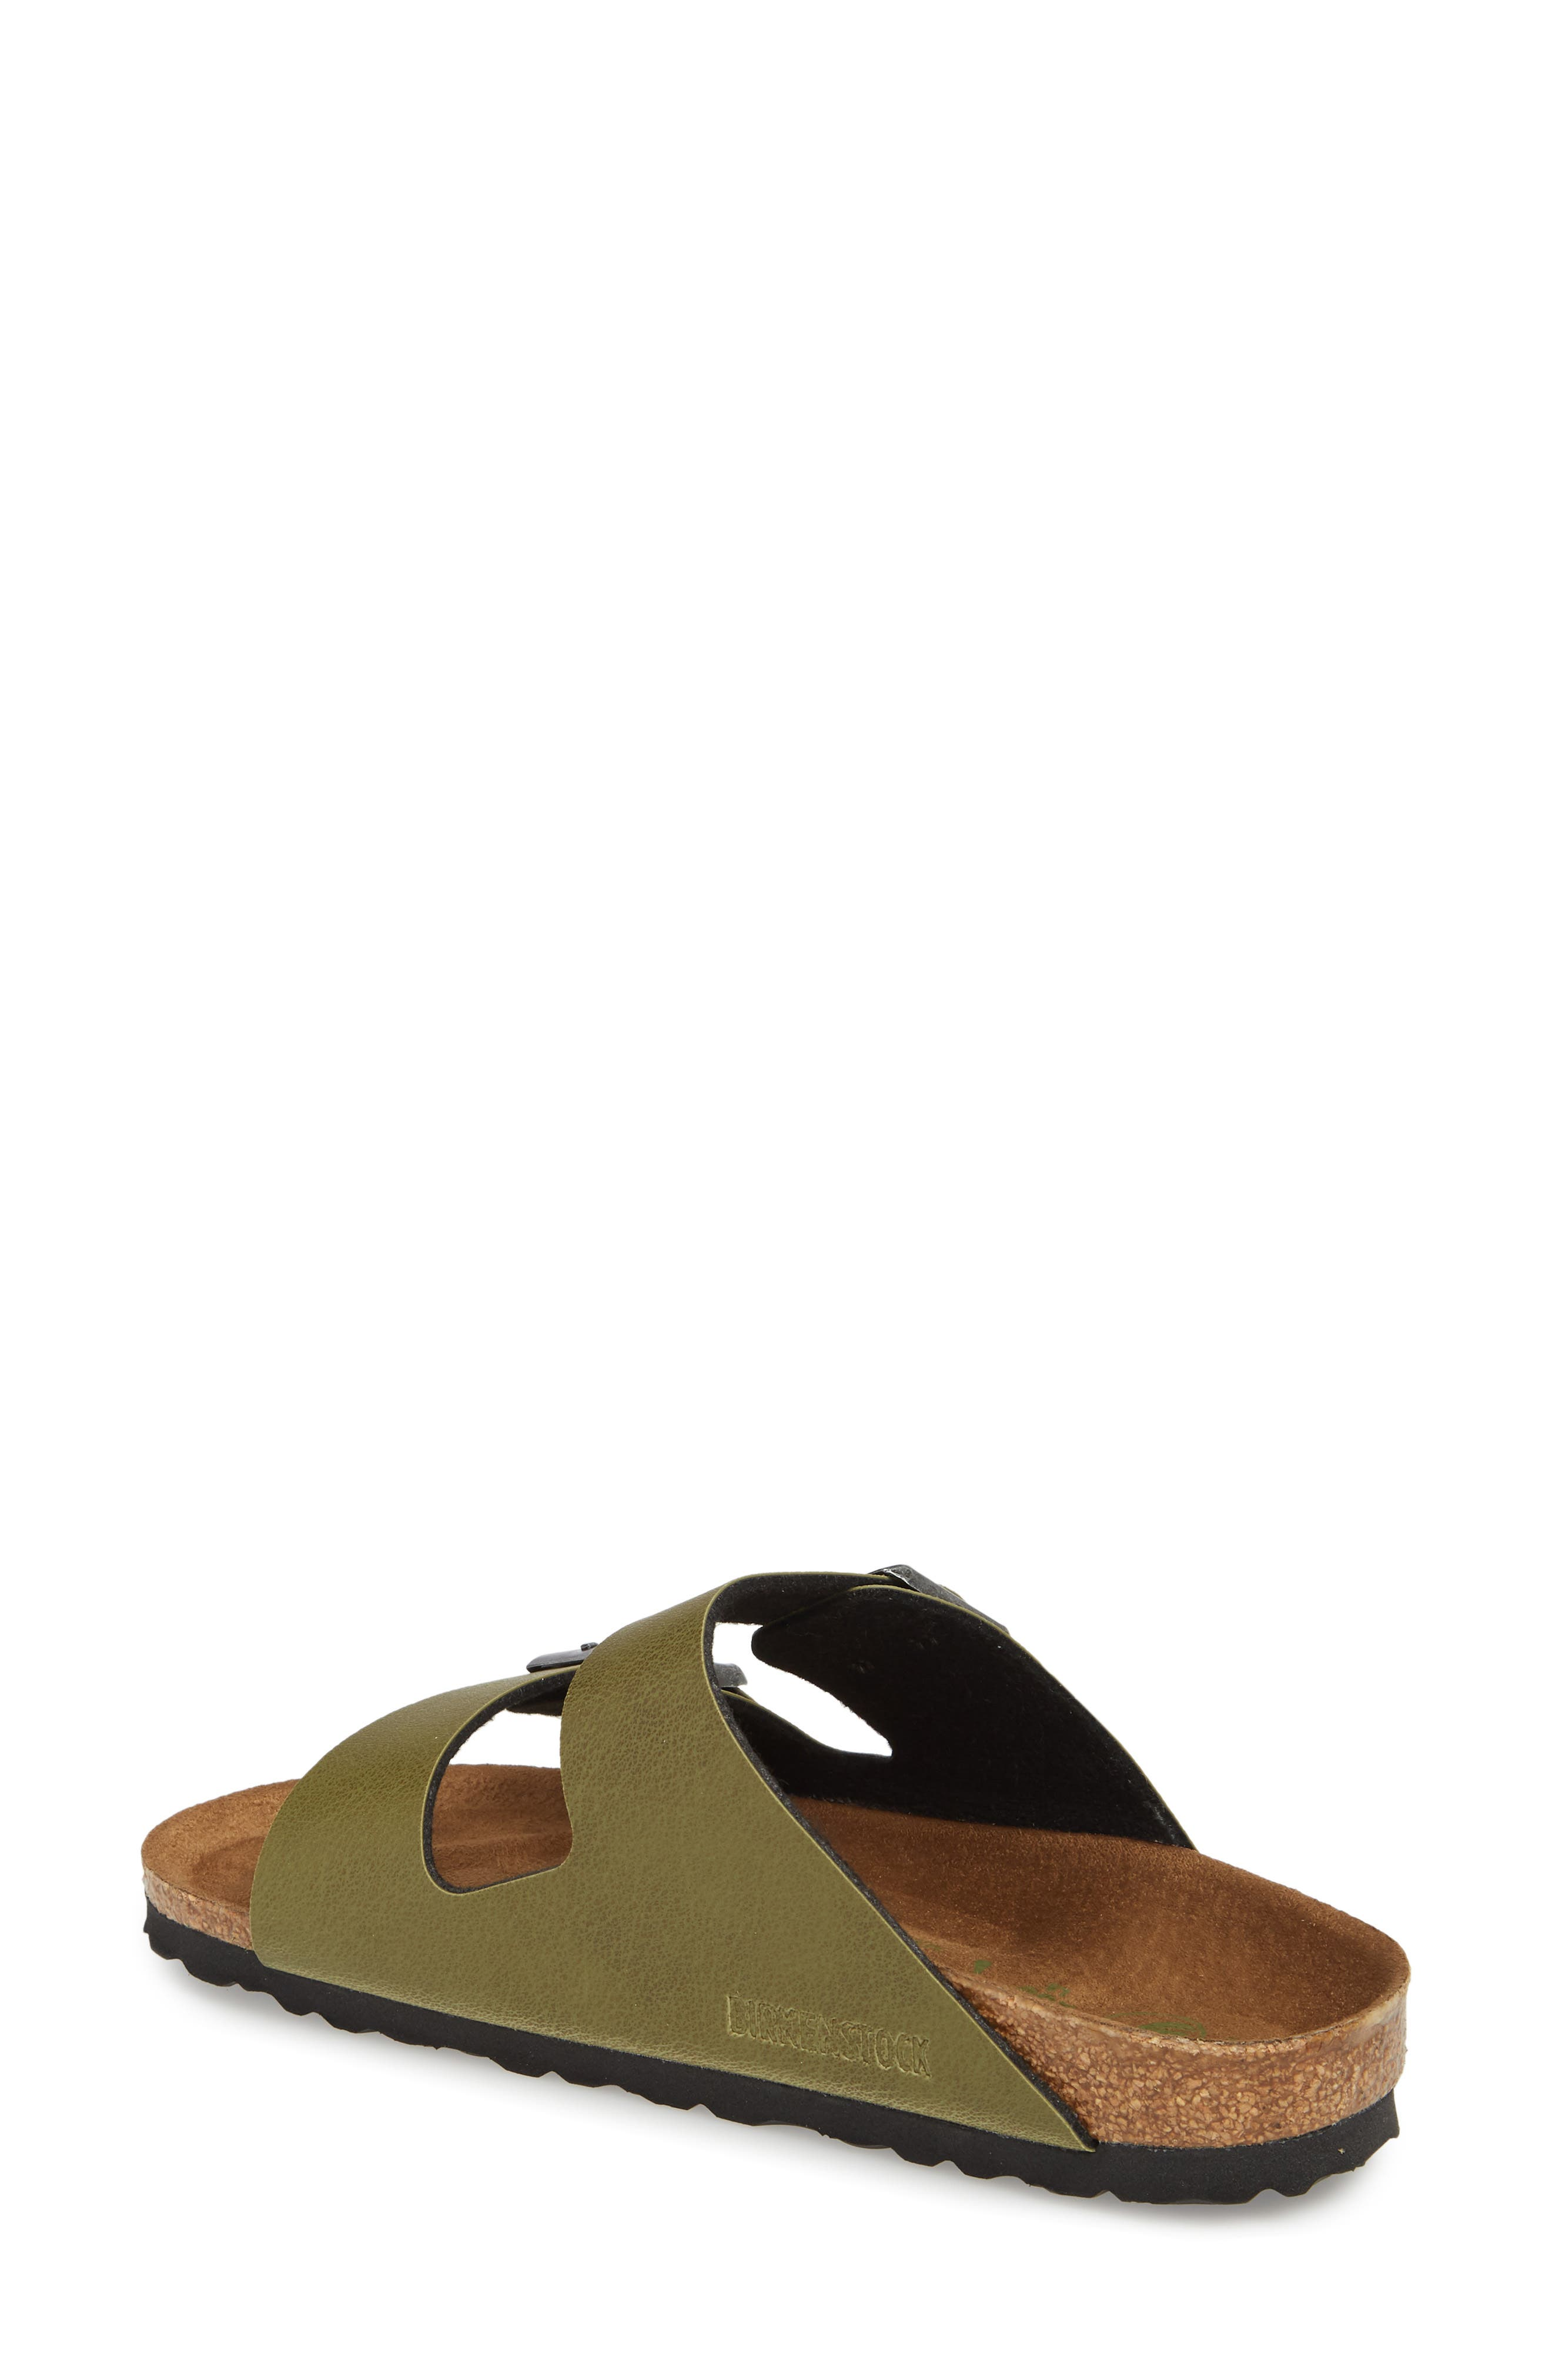 Alternate Image 2  - Birkenstock Arizona Birko-Flor™ Slide Sandal (Women)